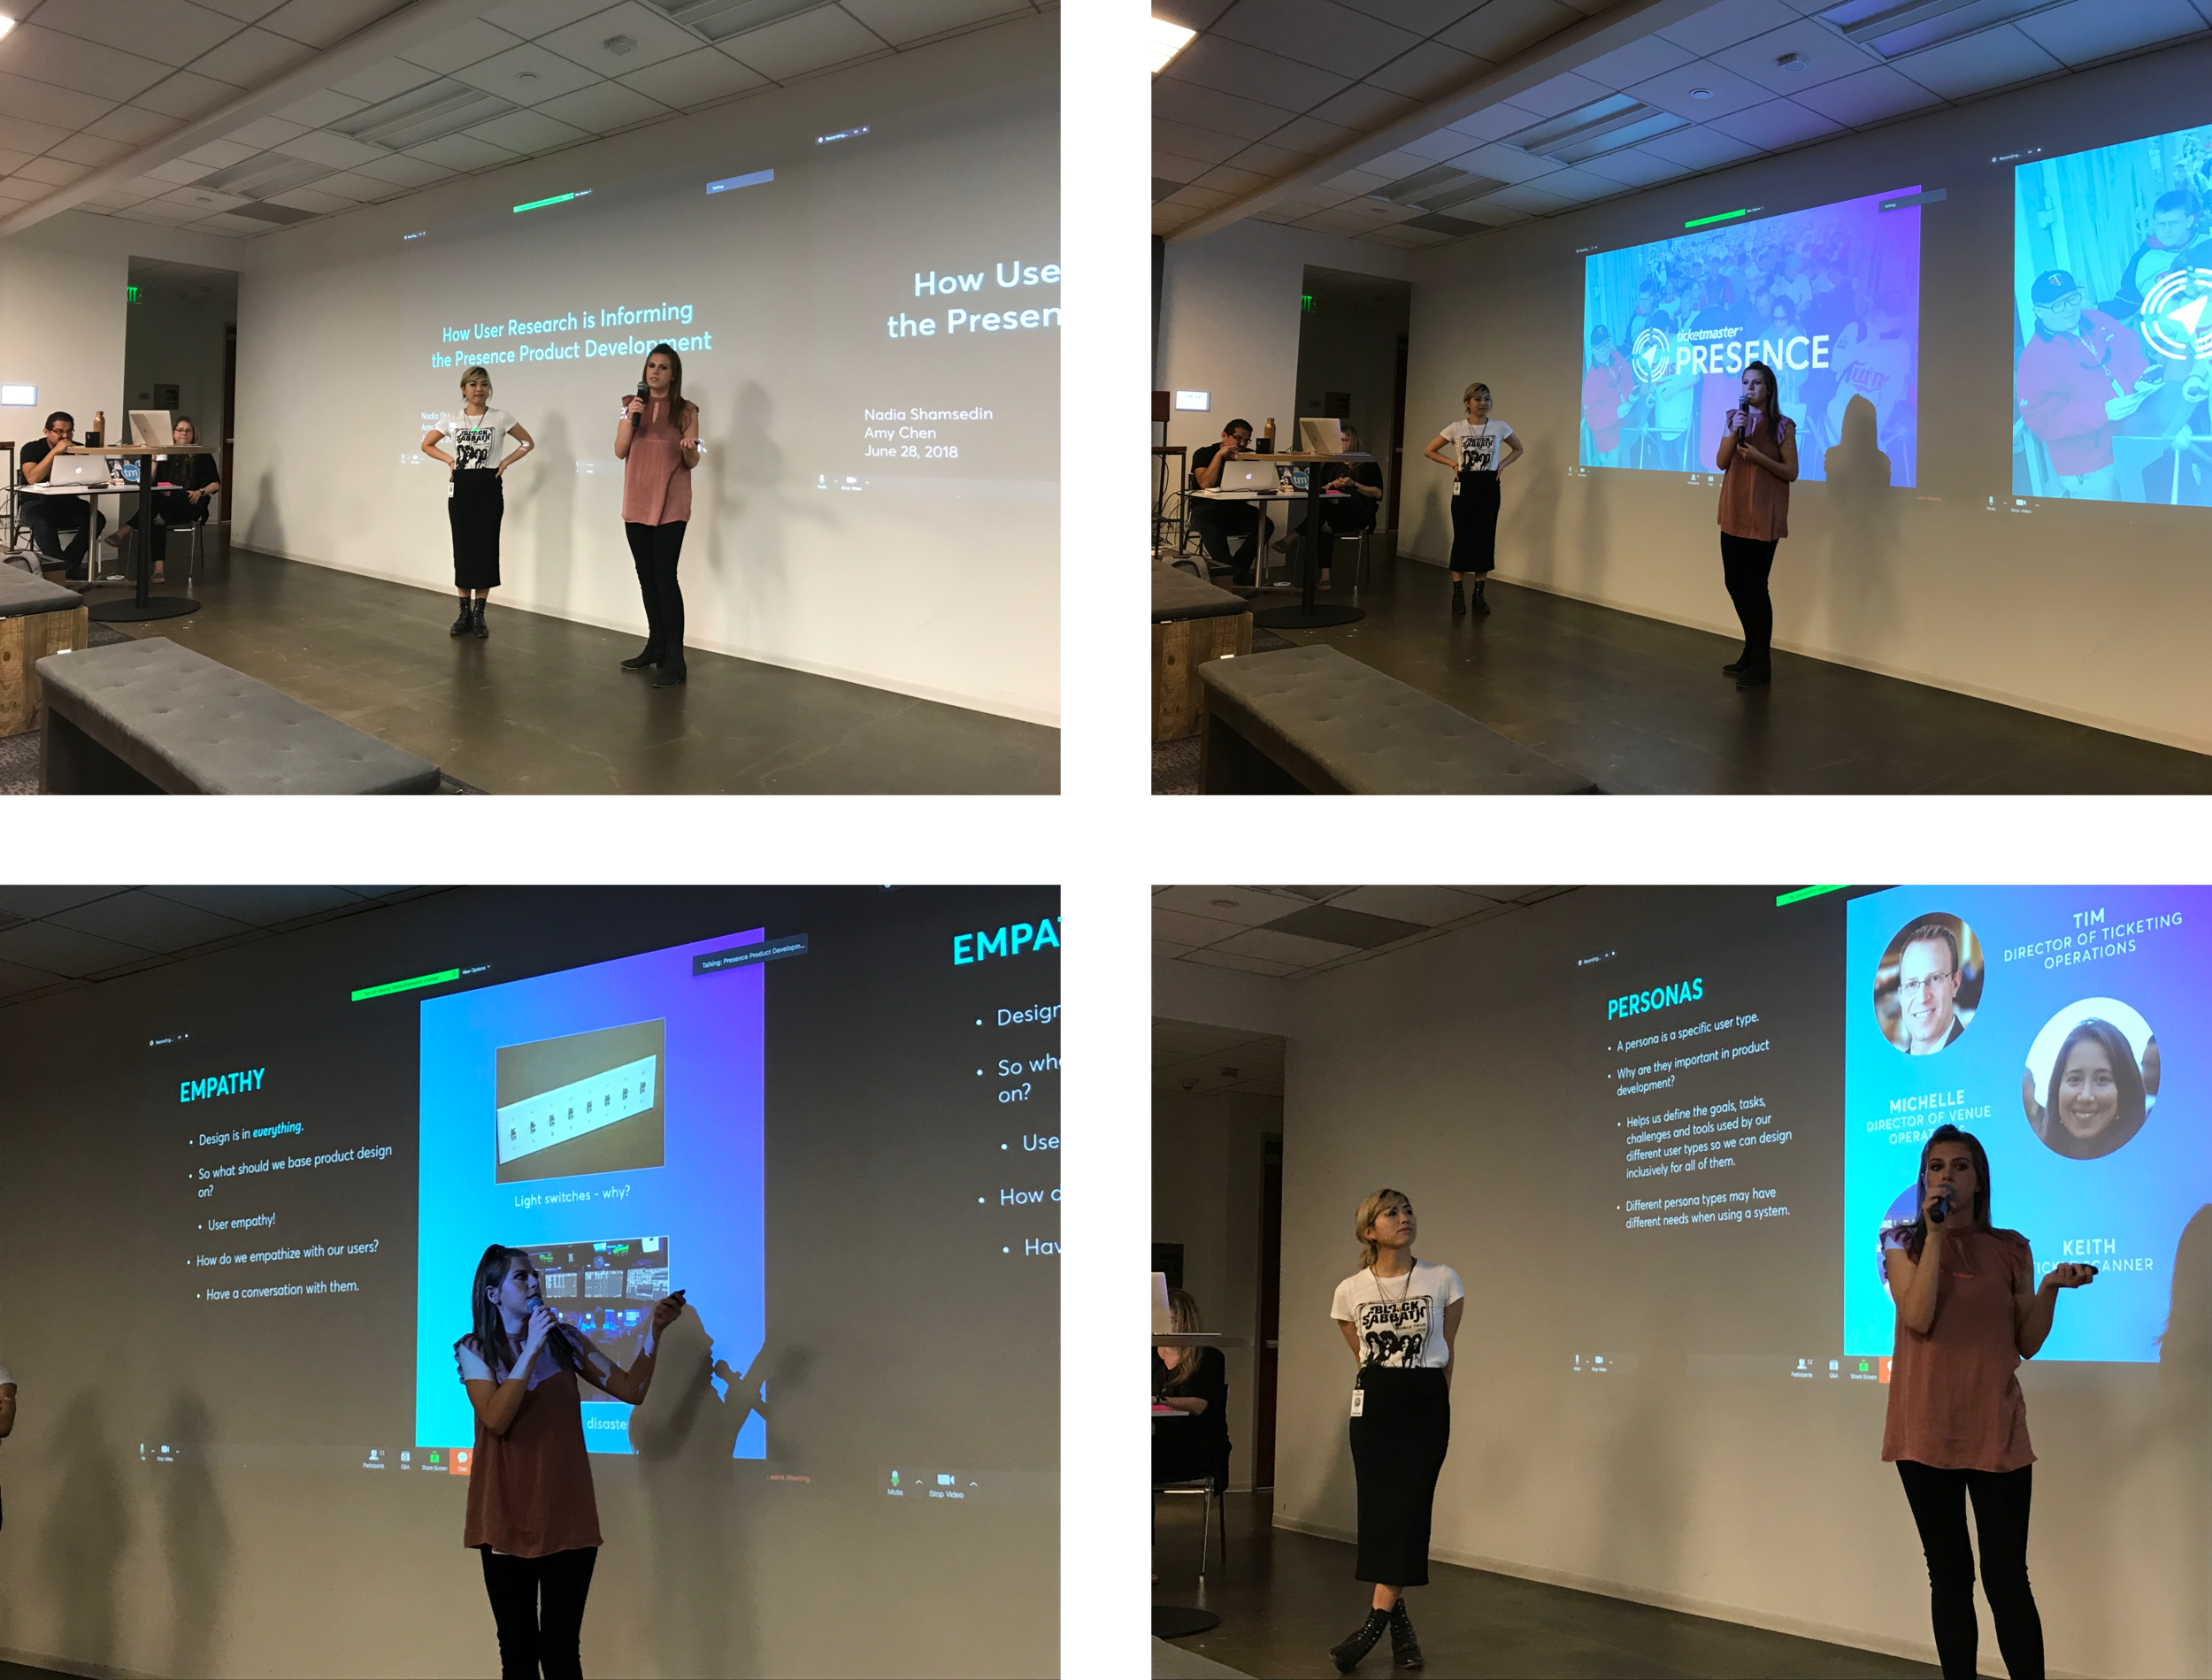 """Some images captured from our first company-wide presentation on the results of the initial round of research, entitled """"How User Research is Informing the Presence Product Development."""" We had over 100 people tune in. I also used the opportunity to evangelize what UX research is and how it will help us build better products."""